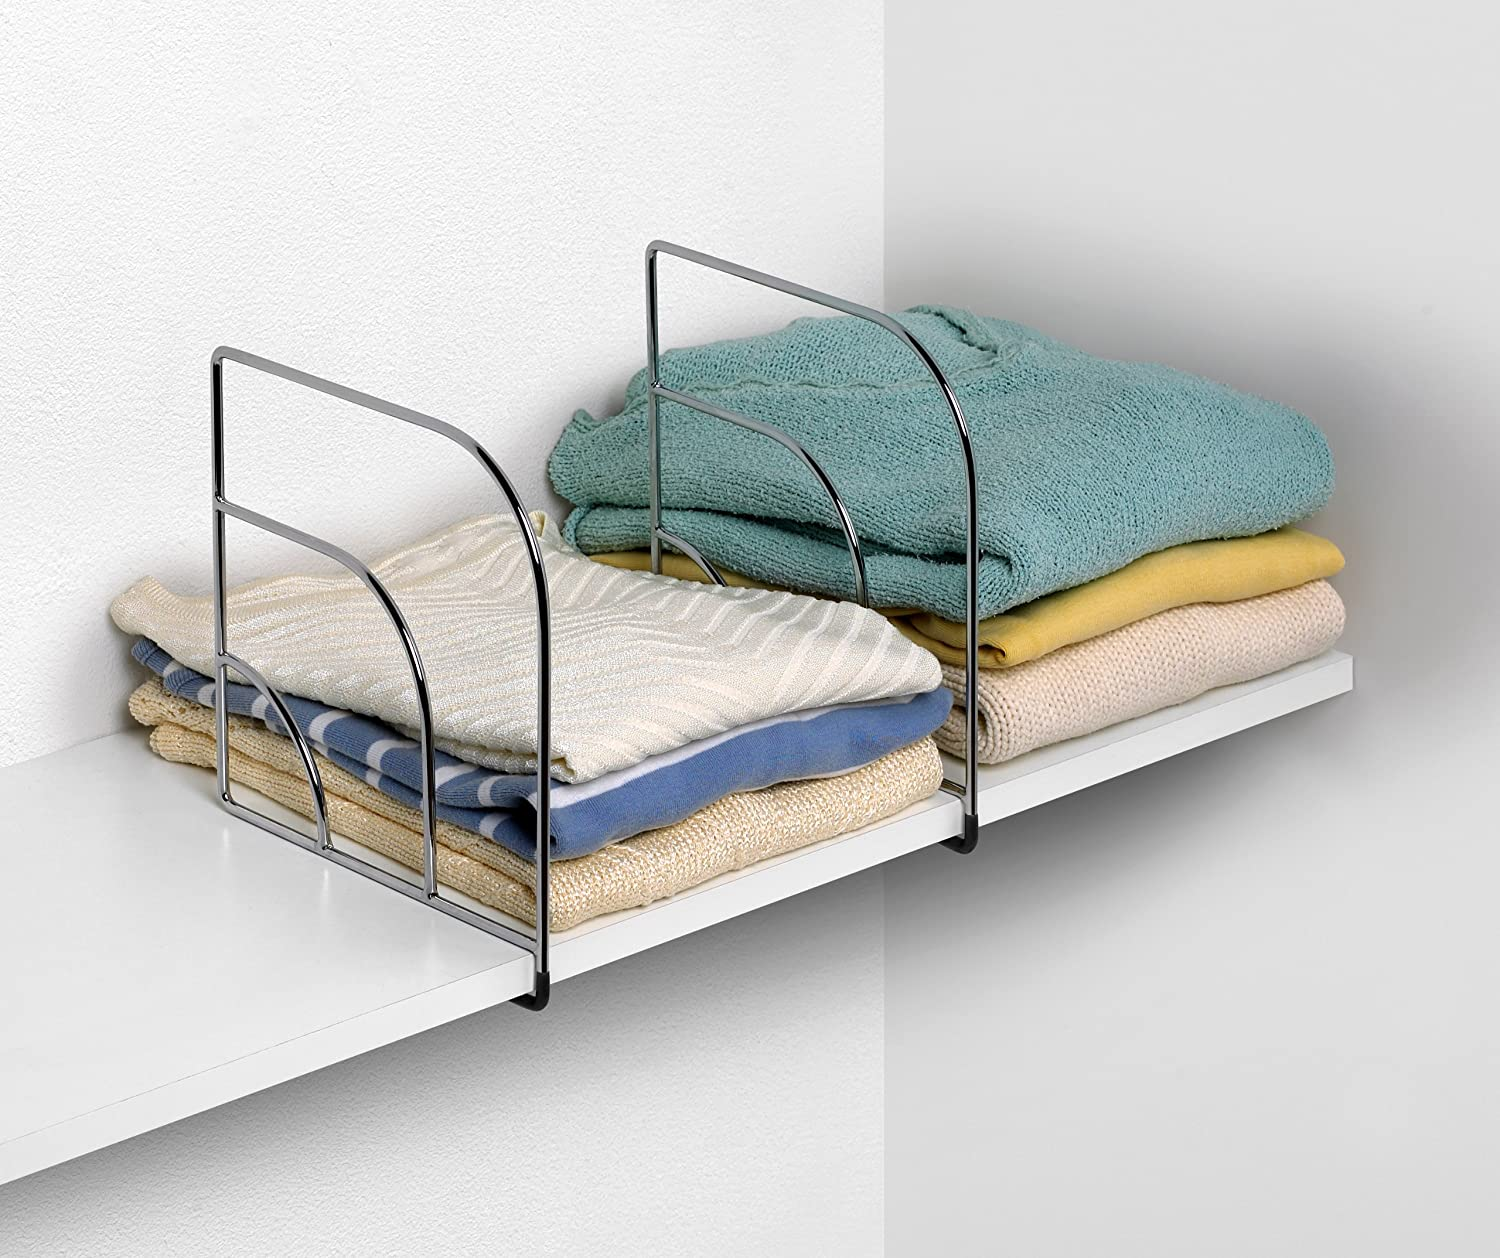 linens wooden pin keep shelf of stacks to tame and tips towels place your organizing shelves divided sweaters closet diy be help space will dividers clothing adding bed in